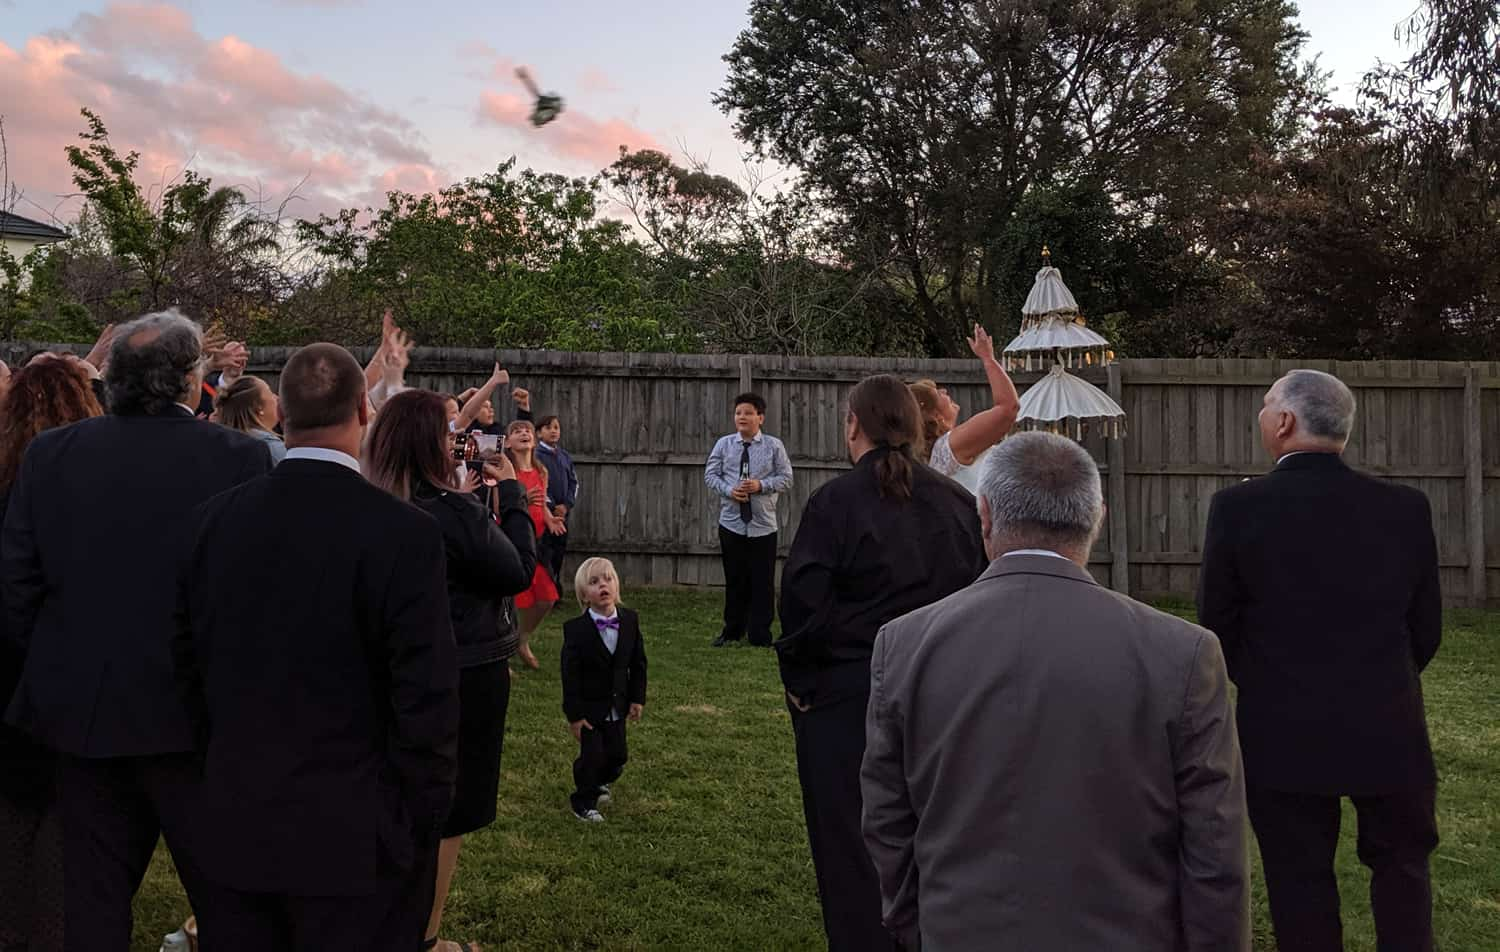 backyard wedding melbourne bouquet throw reception home